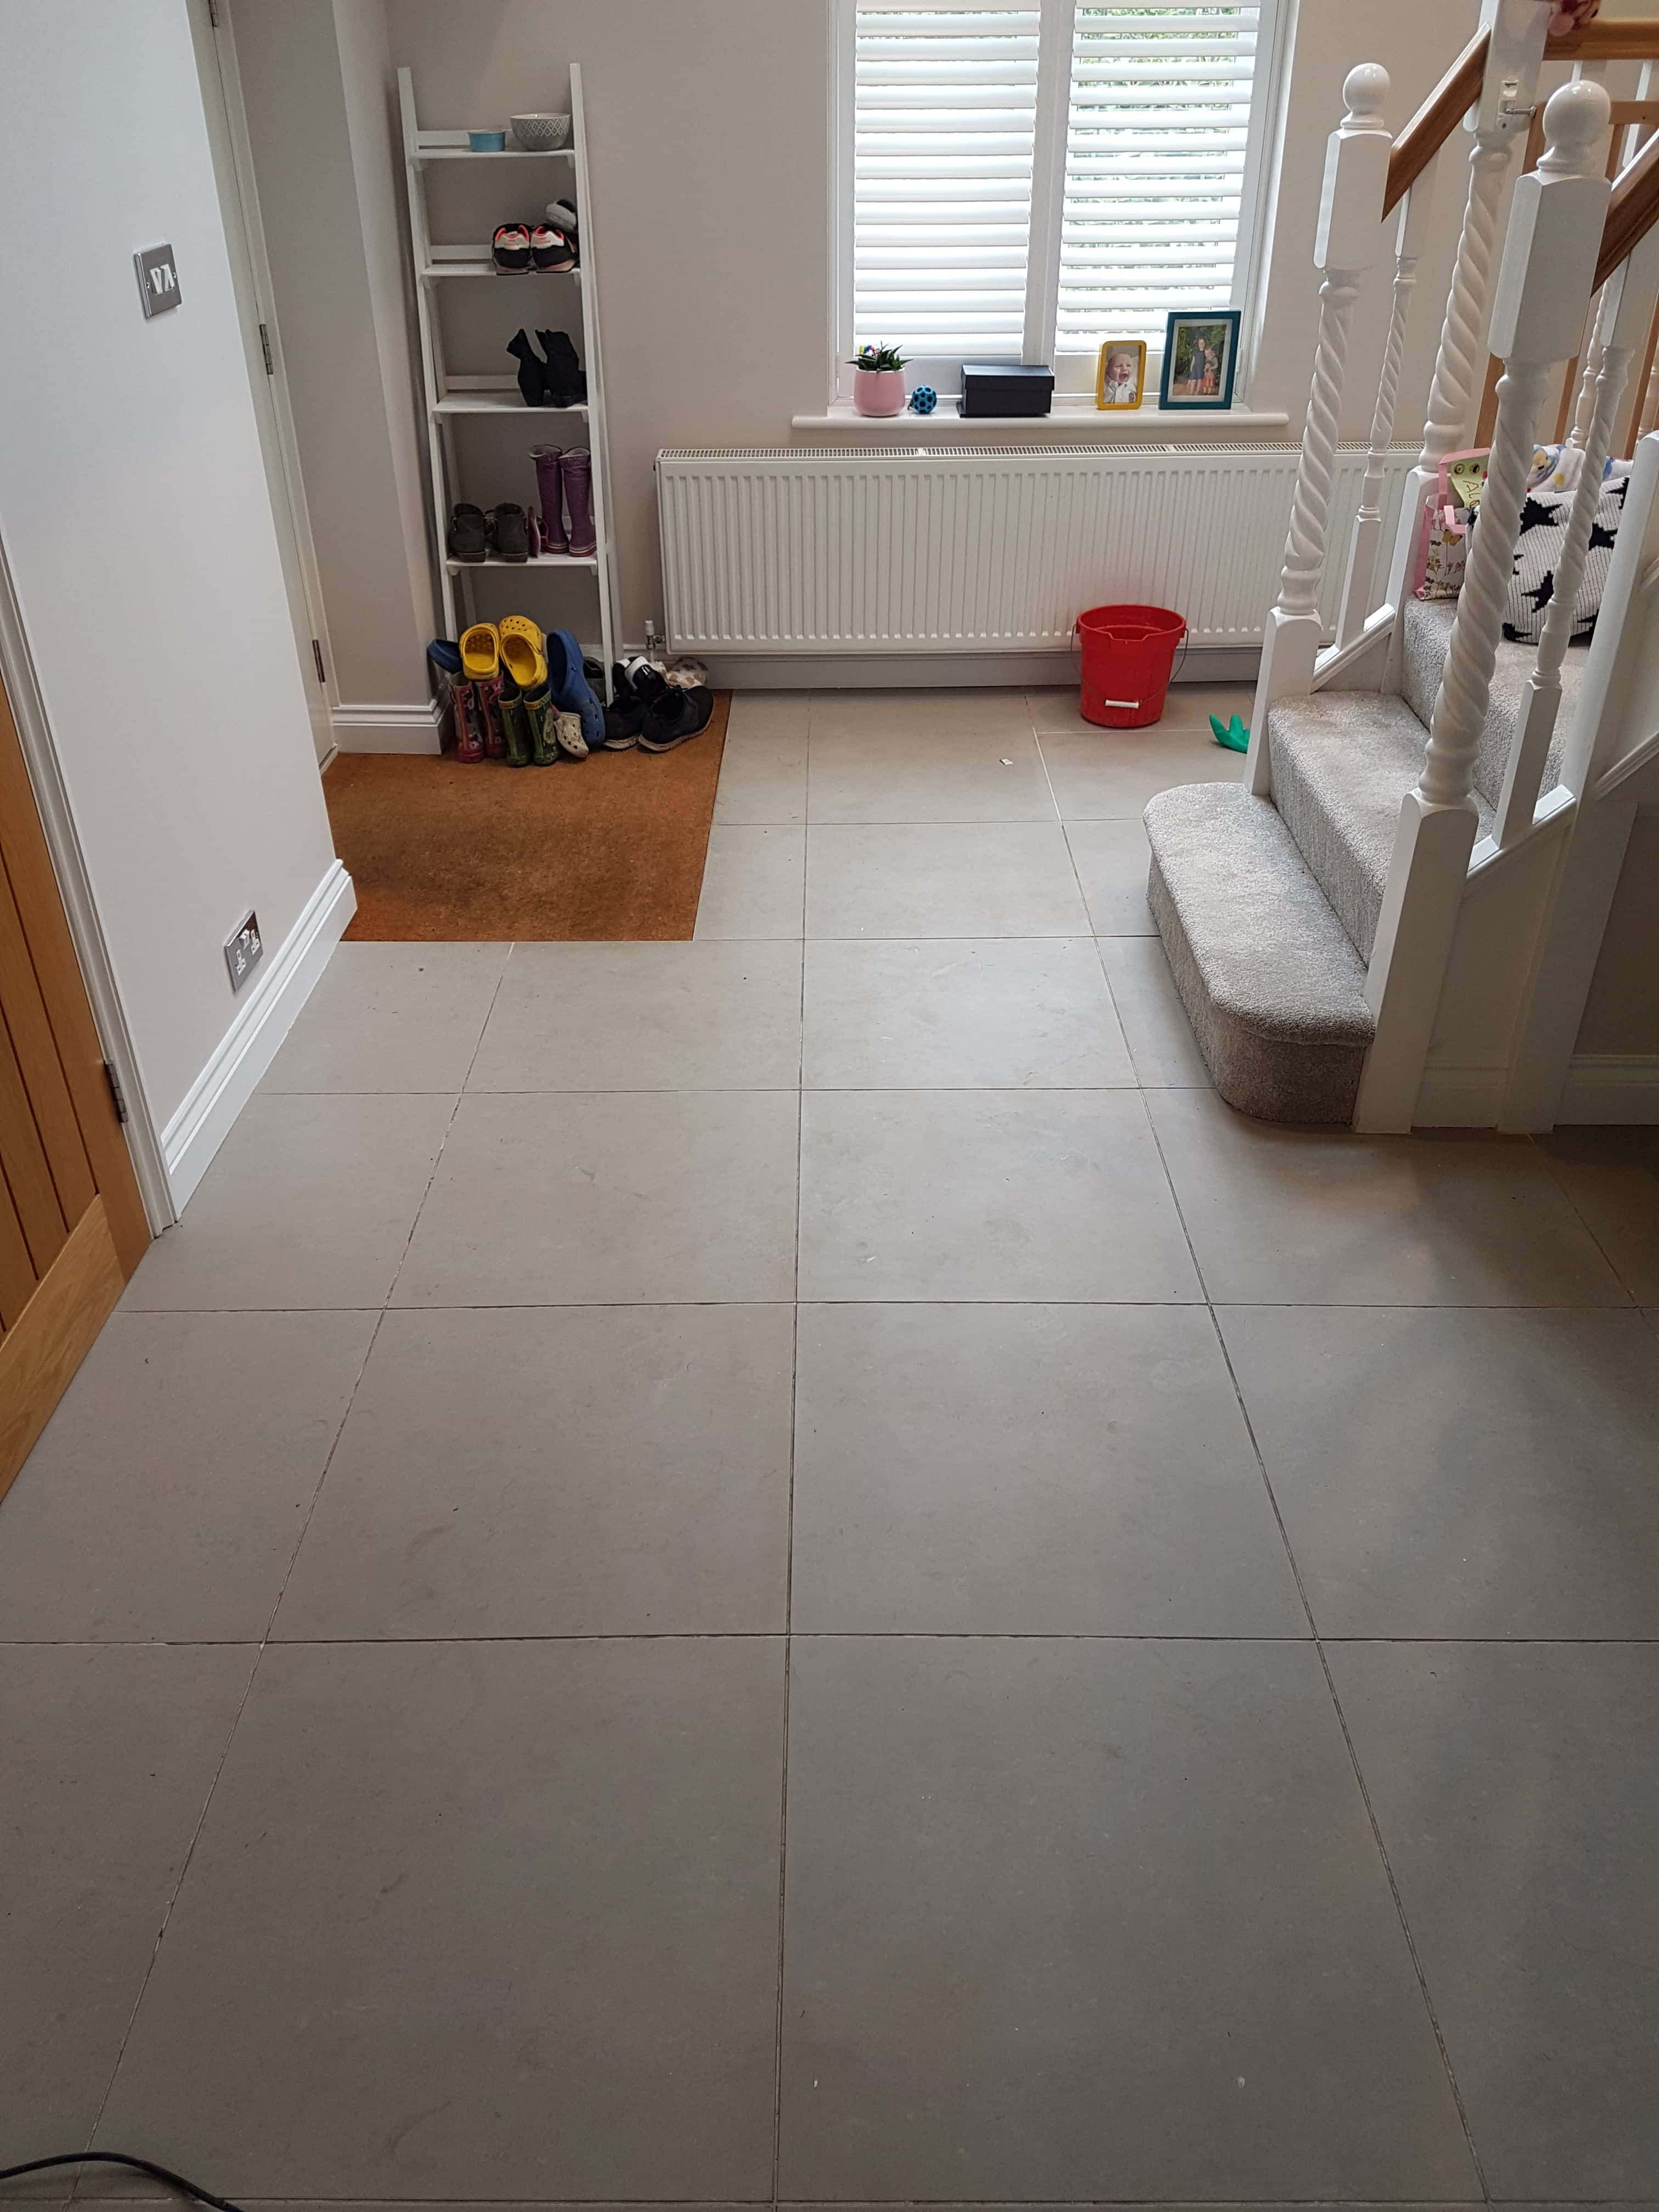 Porcelain Tile and Grout Before Cleaning